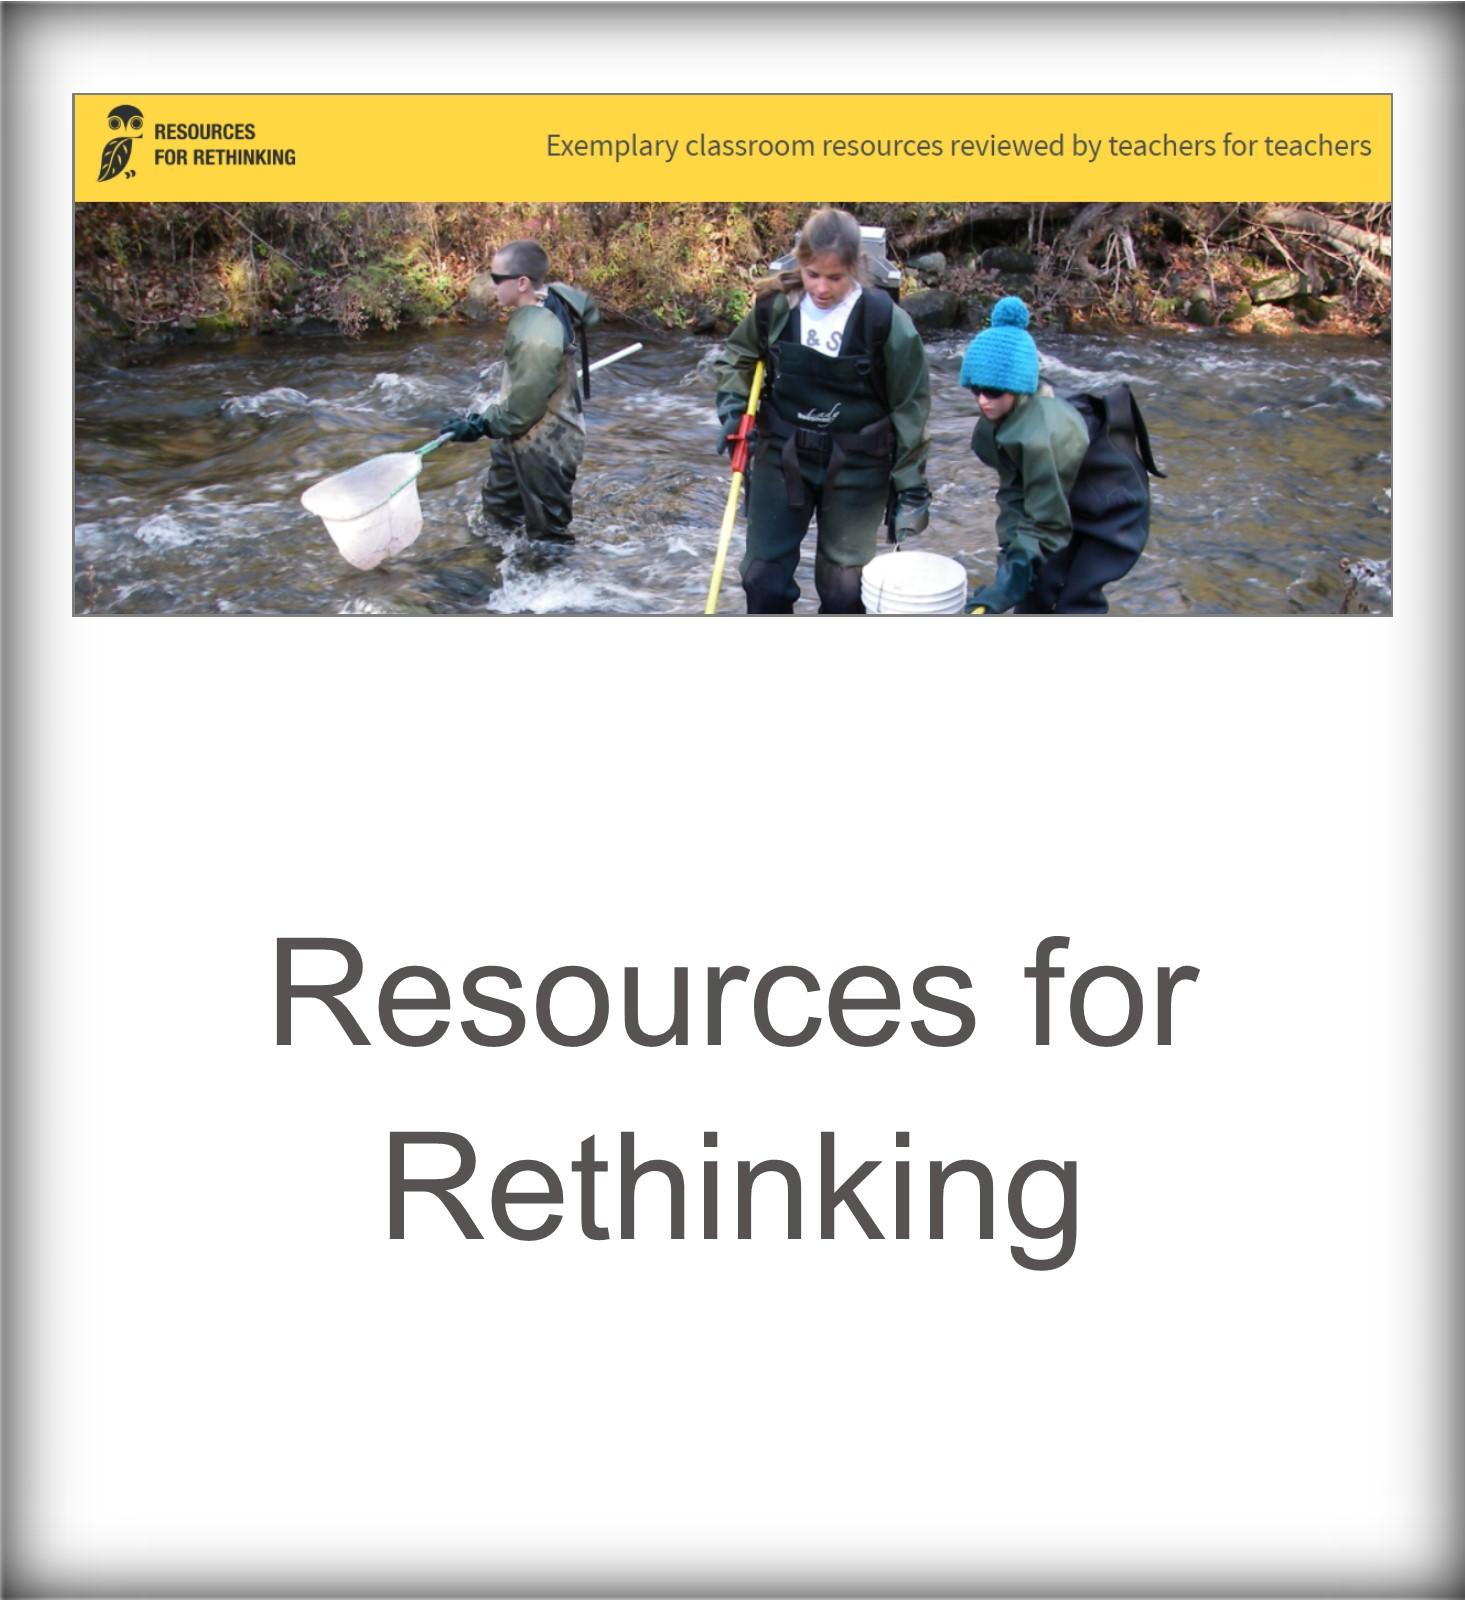 Resources for Rethinking: Exemplary classroom resources reviewed by teachers for teachers